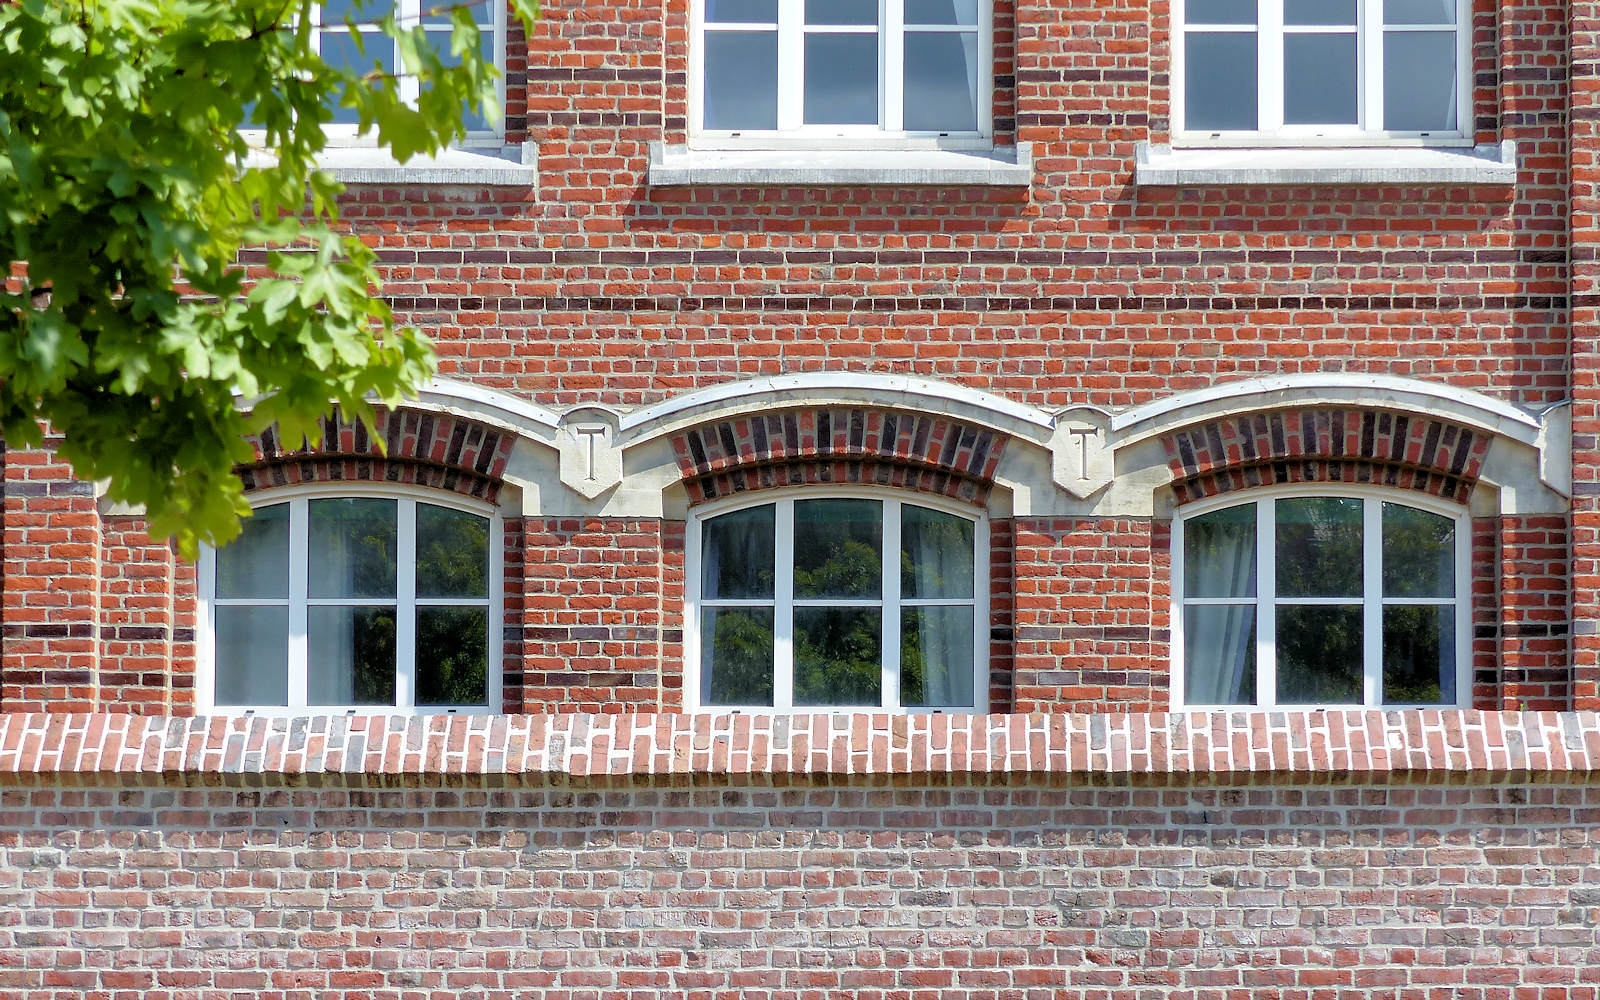 Lycée Gambetta, Tourcoing - Ornementations architecturales